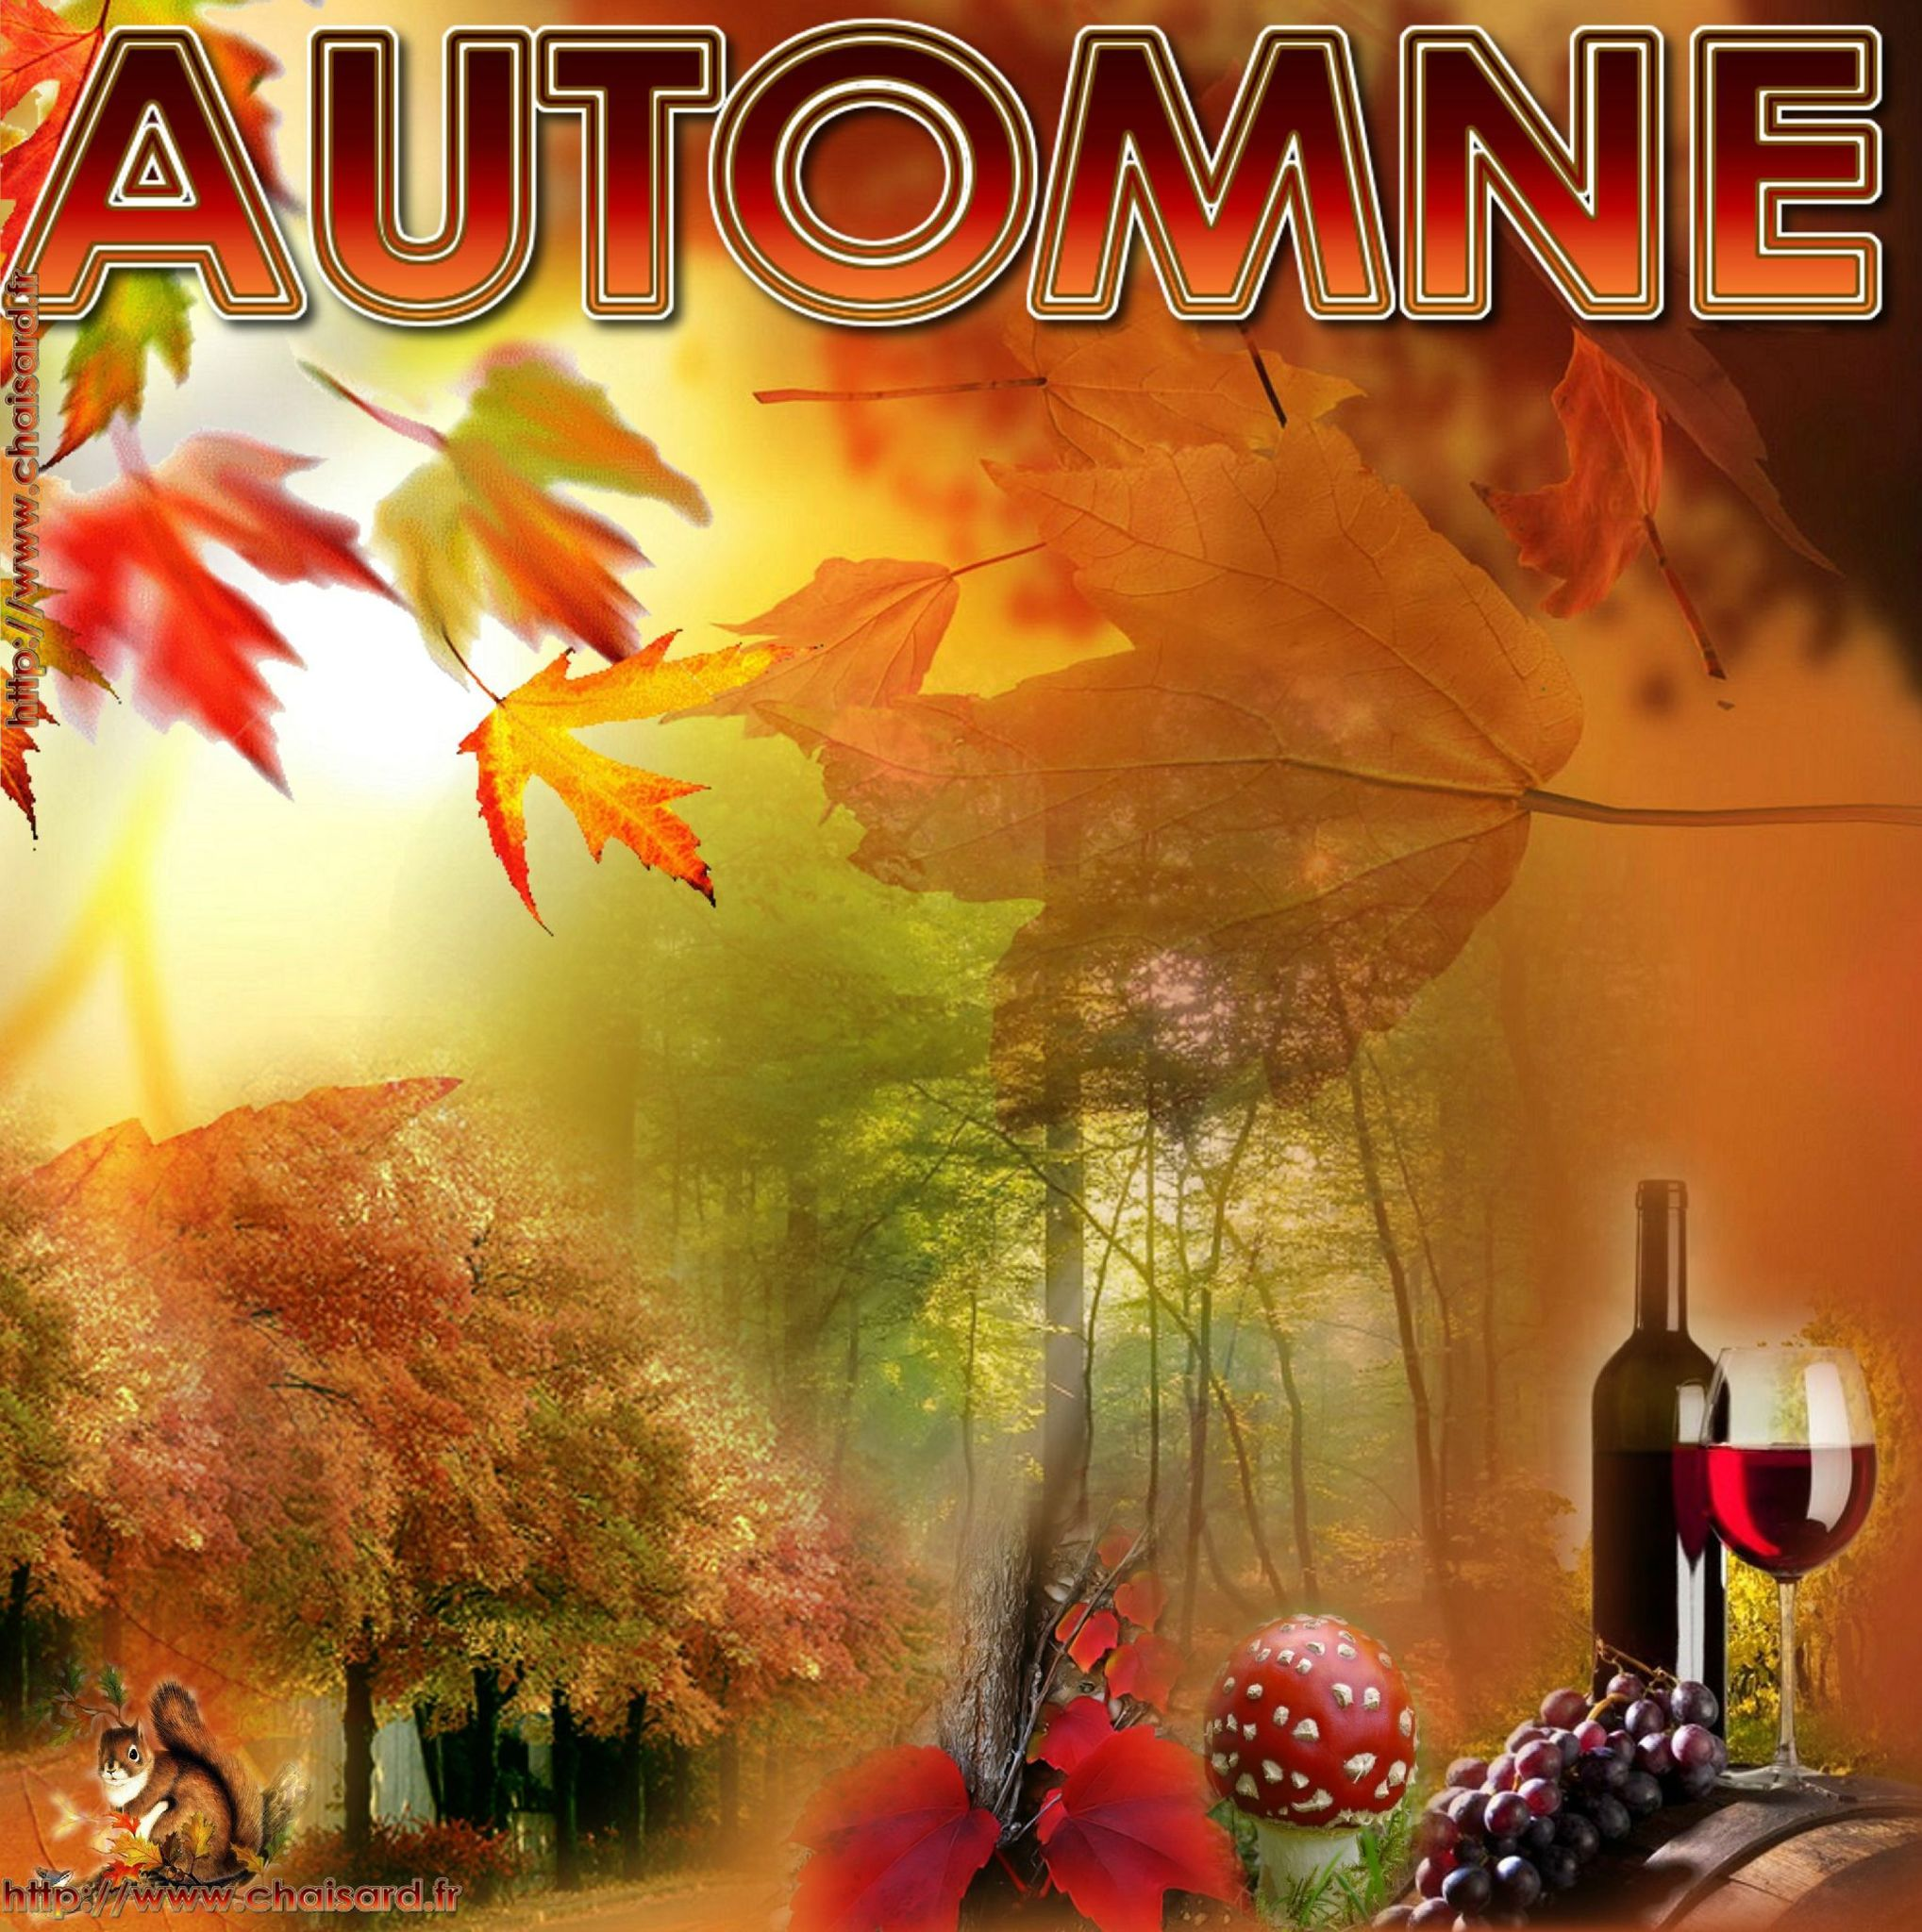 _ 0 CHAISARD AUTOMNE 1 SEPTEMBRE